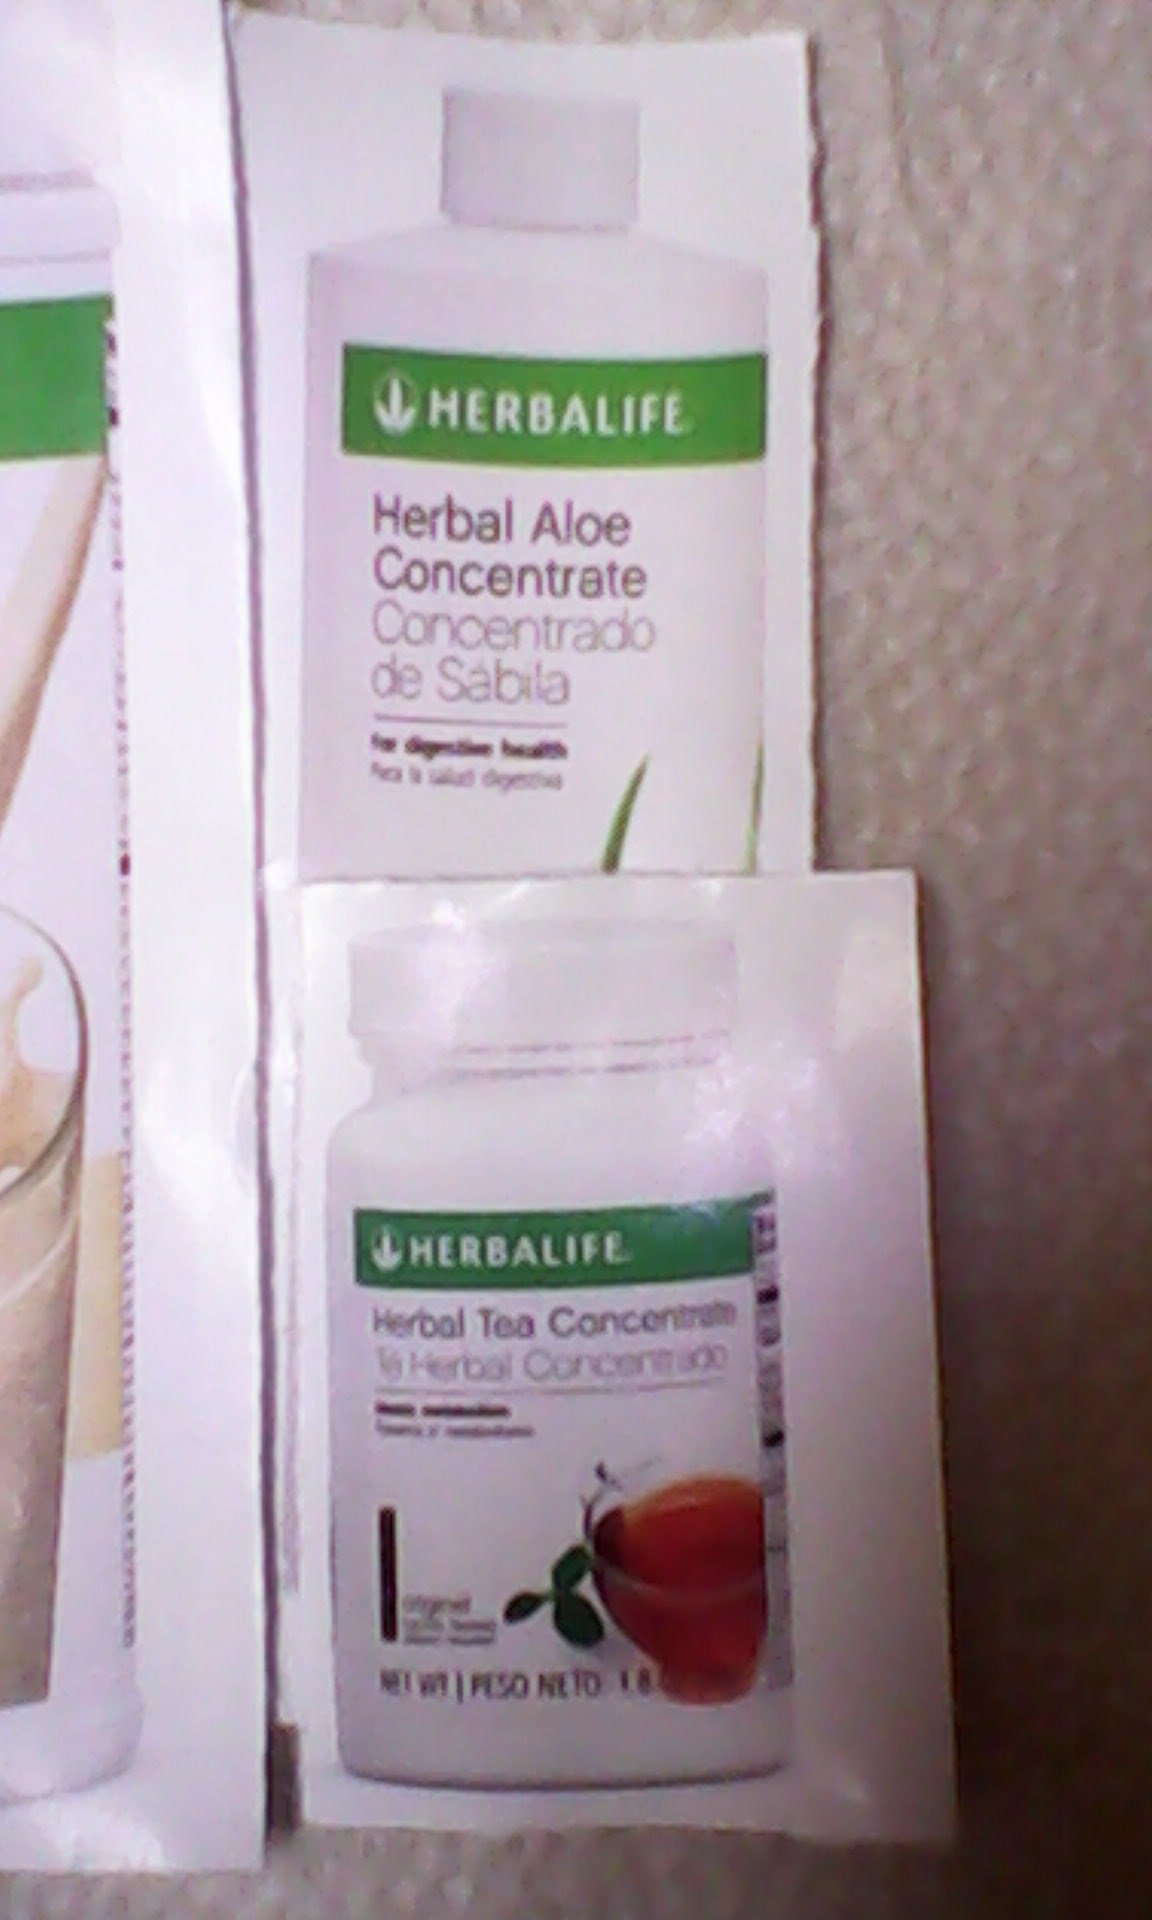 HERBALIFE QUICK COMBO - FORMULA 1 SHAKE MIX (Vanilla), PERSONALIZED PROTEIN, HERBAL ALOE (Mango), HERBAL TEA CONCENTRATE (Raspberry) by Herbalife (Image #1)